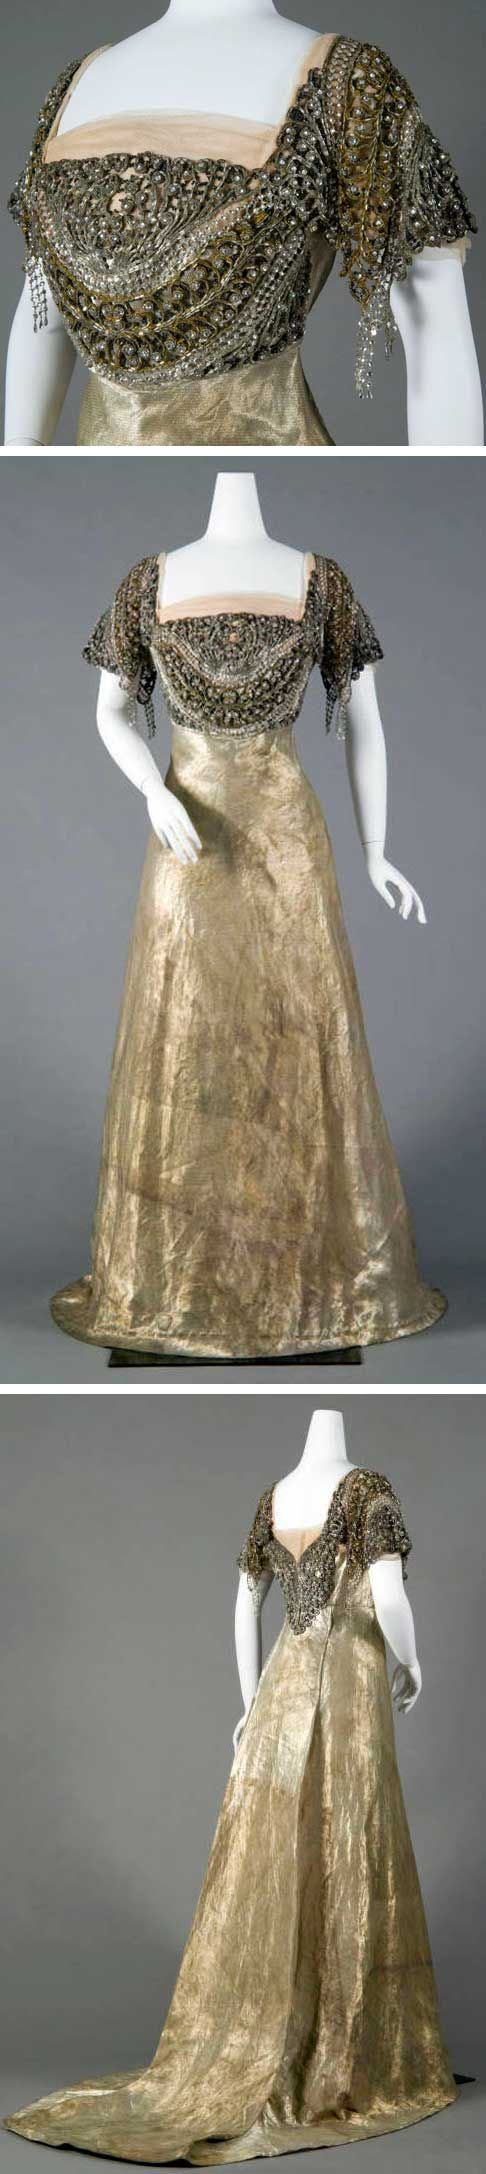 Evening dress, Reville & Rossiter, Ltd., London, ca. 1910. Twilled silver cloth. Square neck and short sleeves. Bodice trimmed with silver bugle beads, seed beads, & rhinestones. Draped light pink tulle at neck & sleeves. Bodice lined with white chiffon and satin; steel stays in built-in corset. Floor-length skirt with slight train. Metal weights in skirt and throughout bottom hem. Chicago History Museum